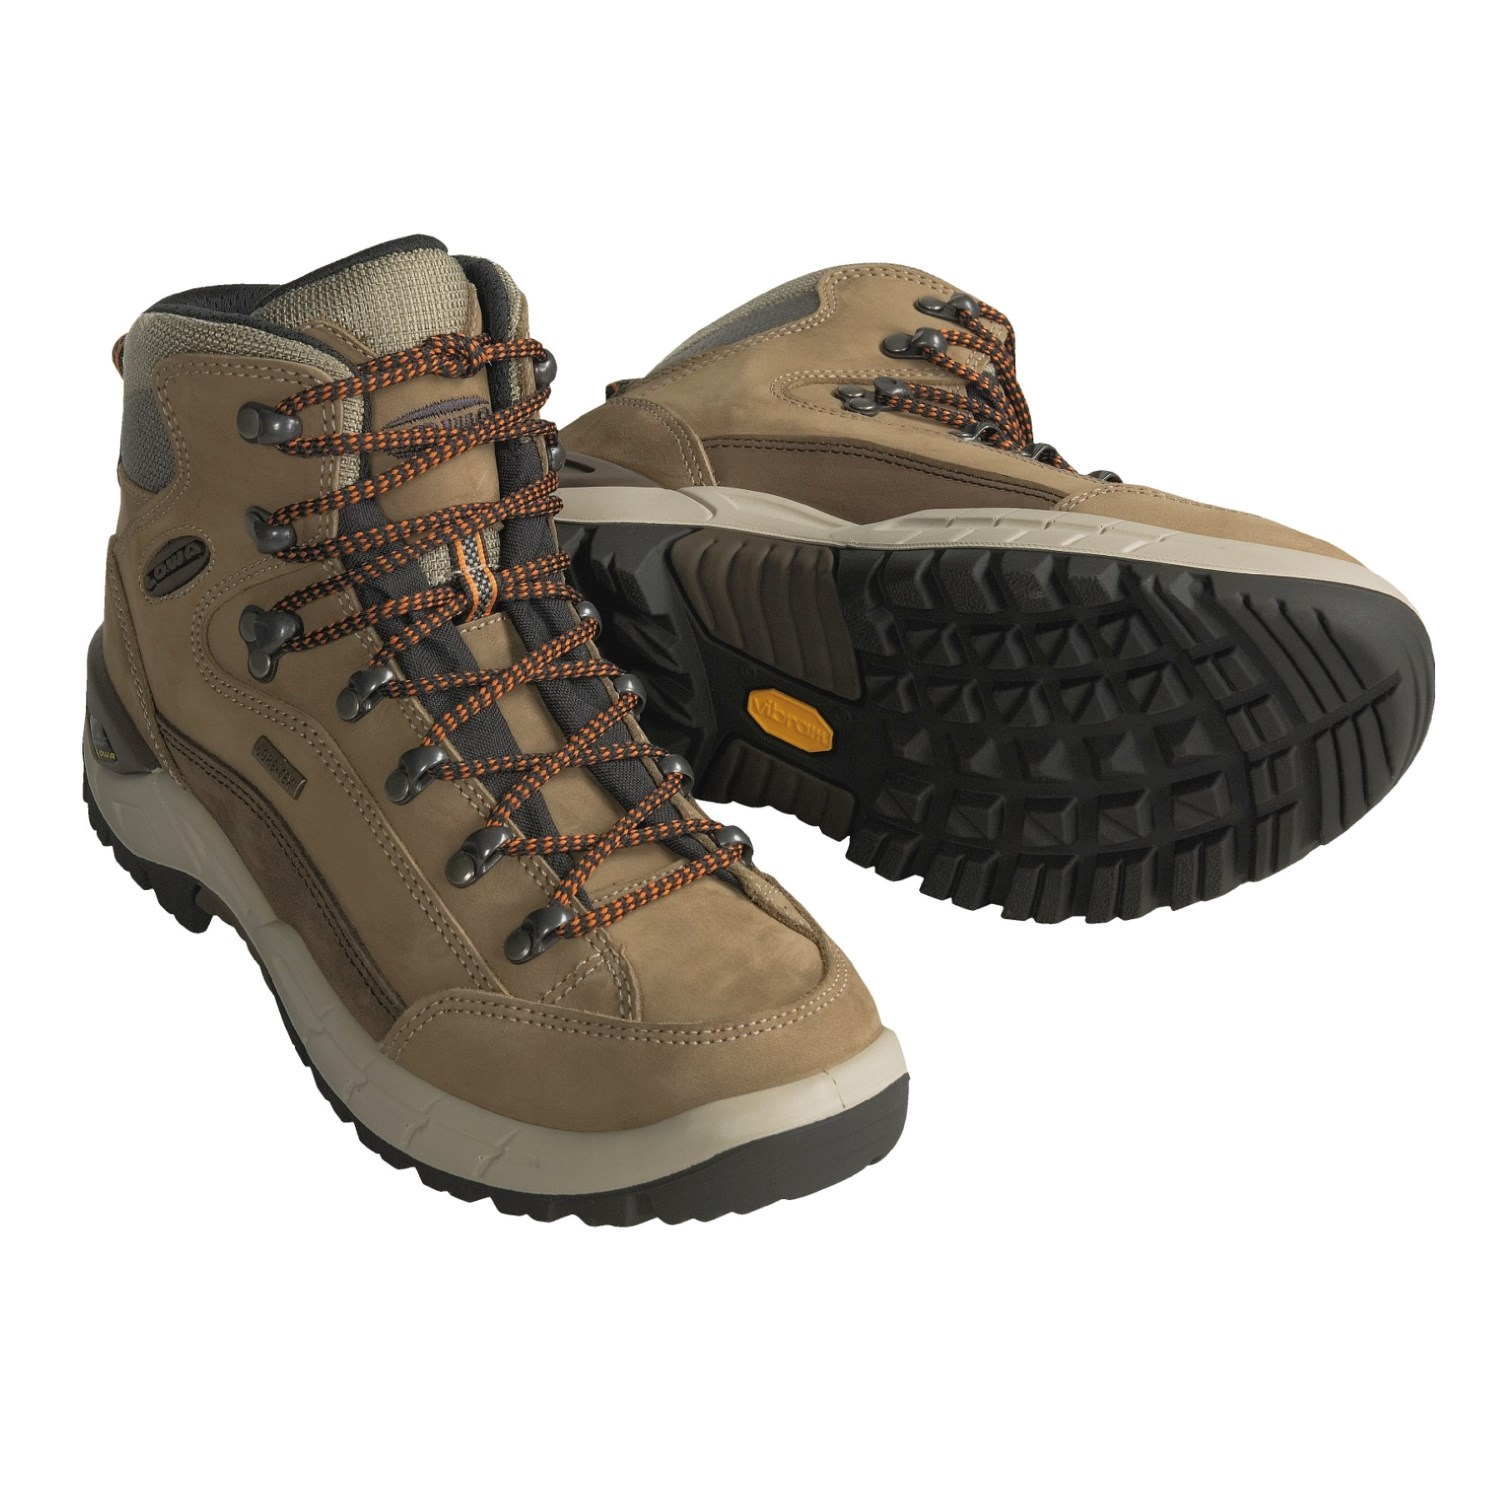 lowa renegade tex 174 hiking boots for 1076y save 50